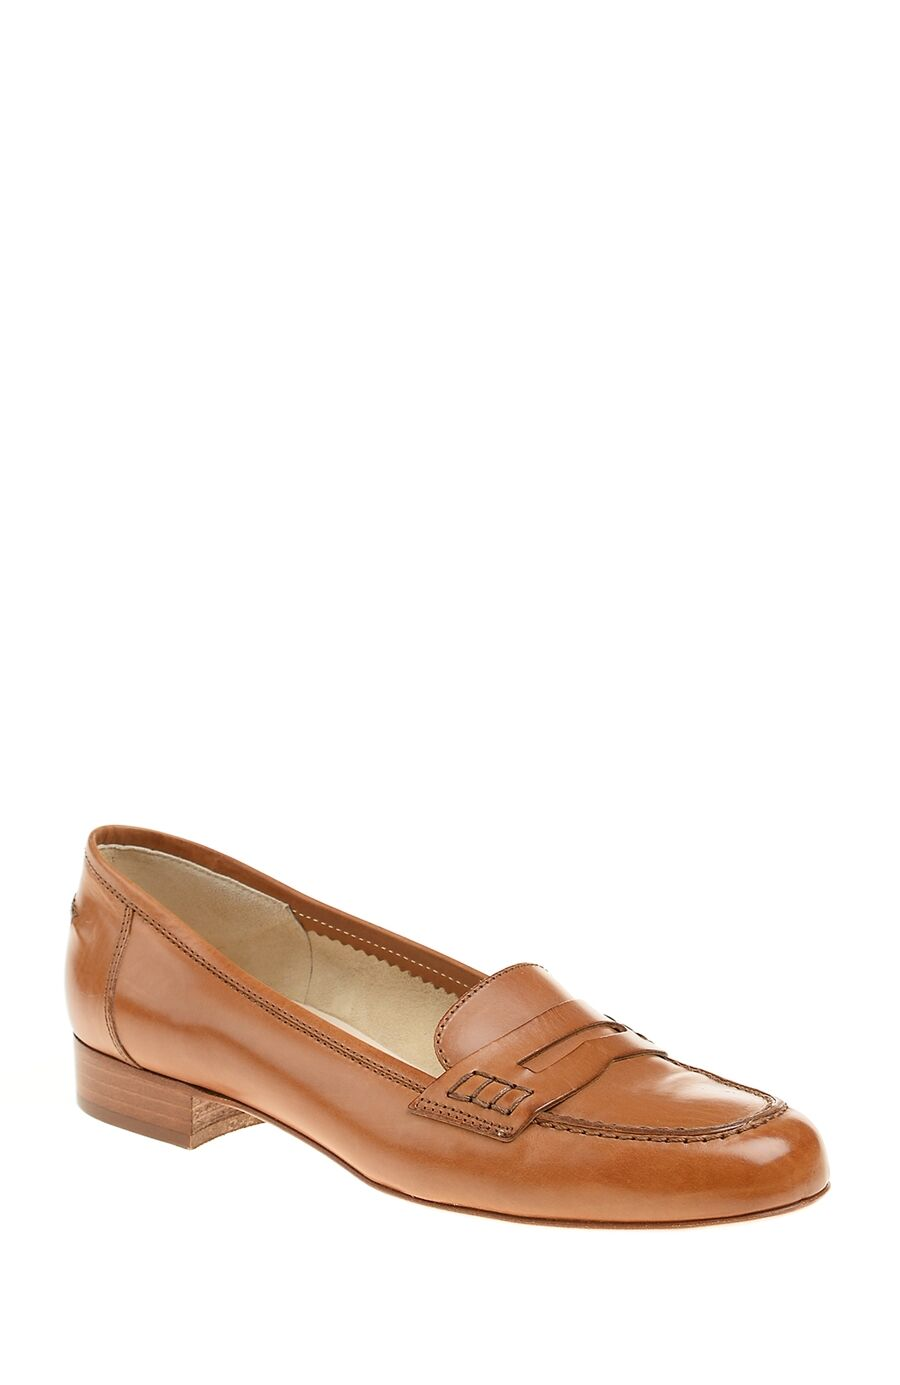 Luca Grossı Loafer – 265.0 TL